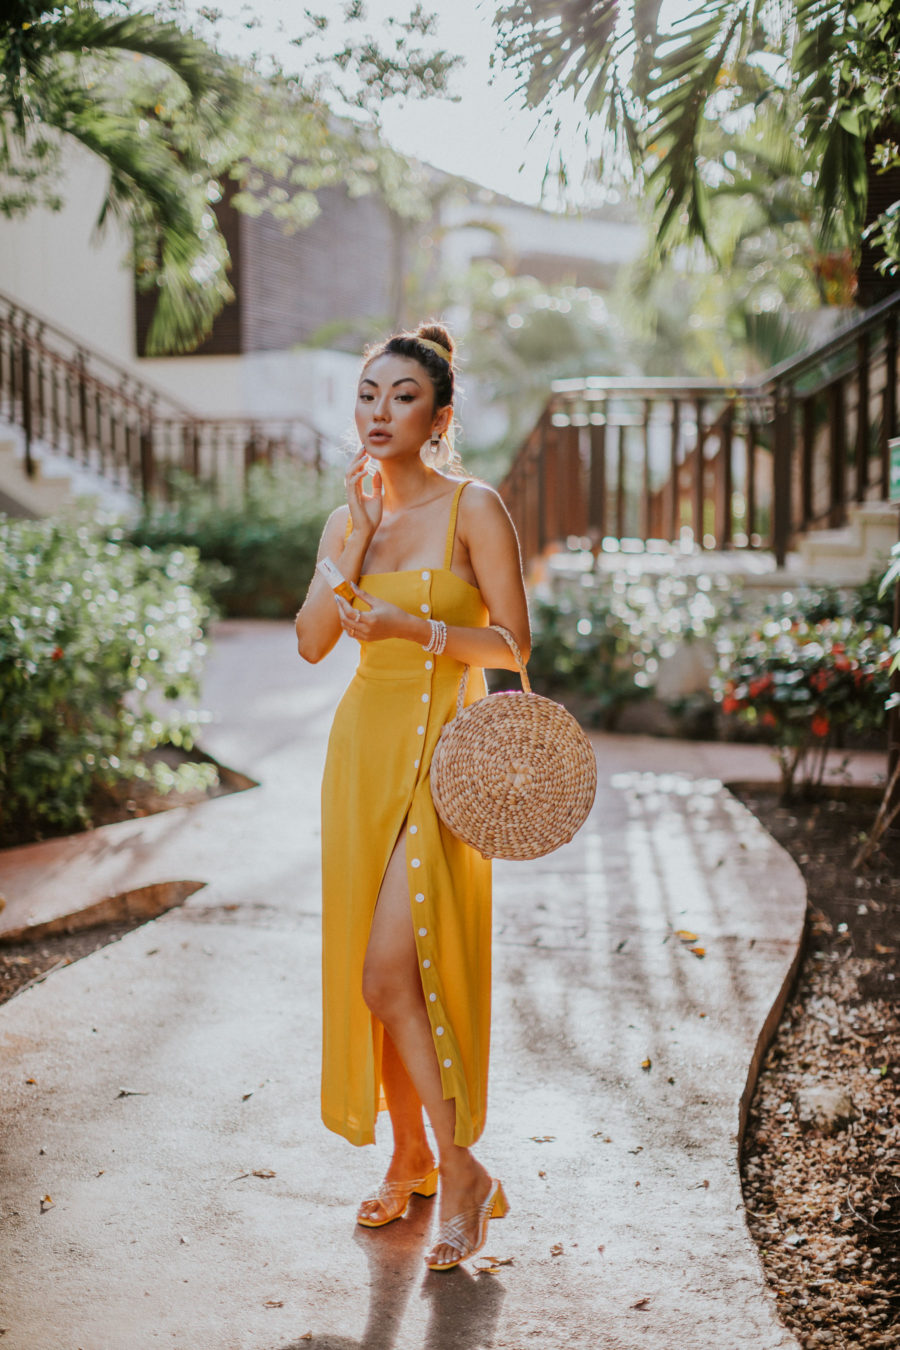 How to Get Smoother and Brighter Skin - Clinique Fresh Press, Clinique Vitamin C Serum, Fairmont Mayakoba, yellow dress, straw circle bag // Notjessfashion.com